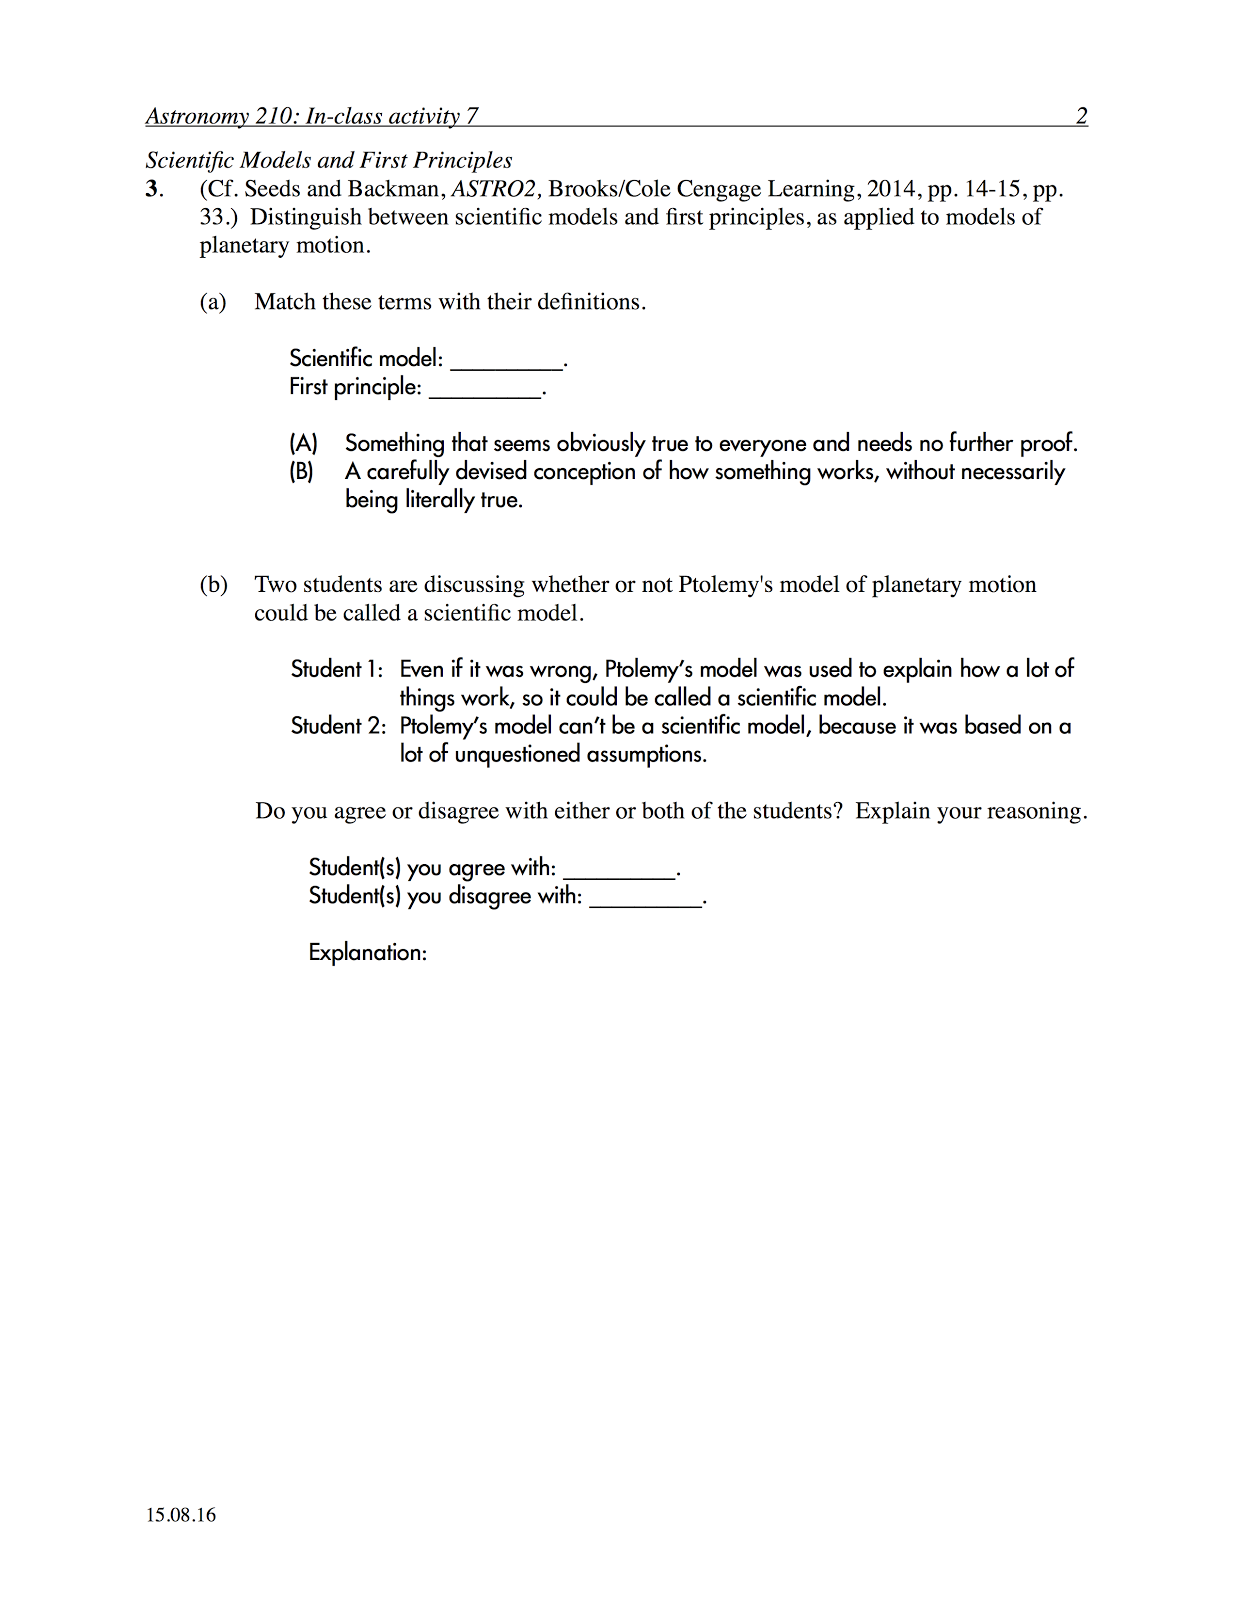 worksheet Laws Of Motion Worksheet p dogs blog boring but important astronomy in class activity and work cooperatively on an worksheet to analyze how the ptolemaic copernican models reproduce progra